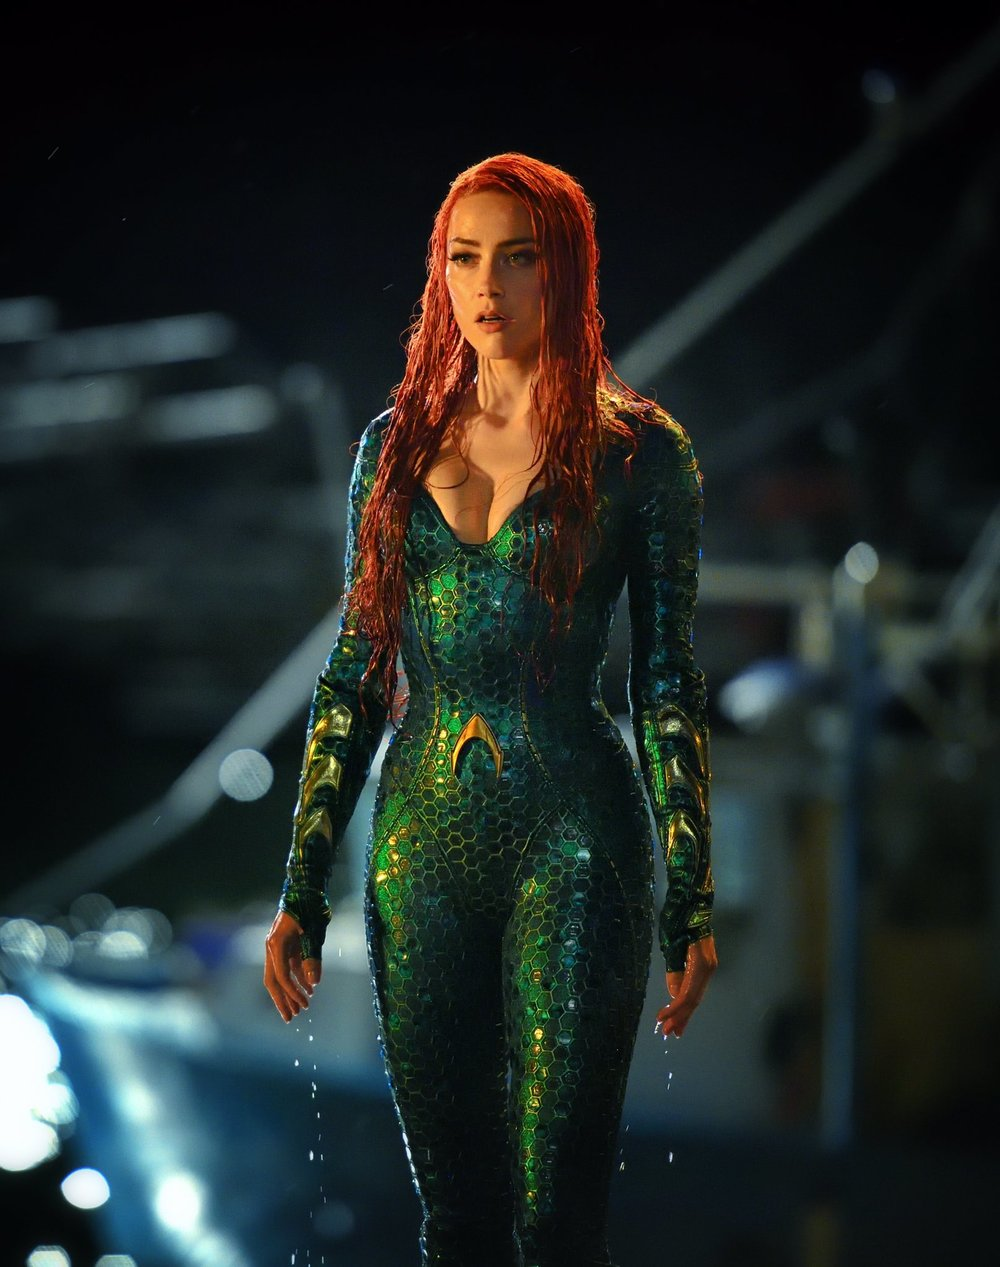 james-wan-shares-new-photo-of-amber-heard-as-mera-in-aquaman1